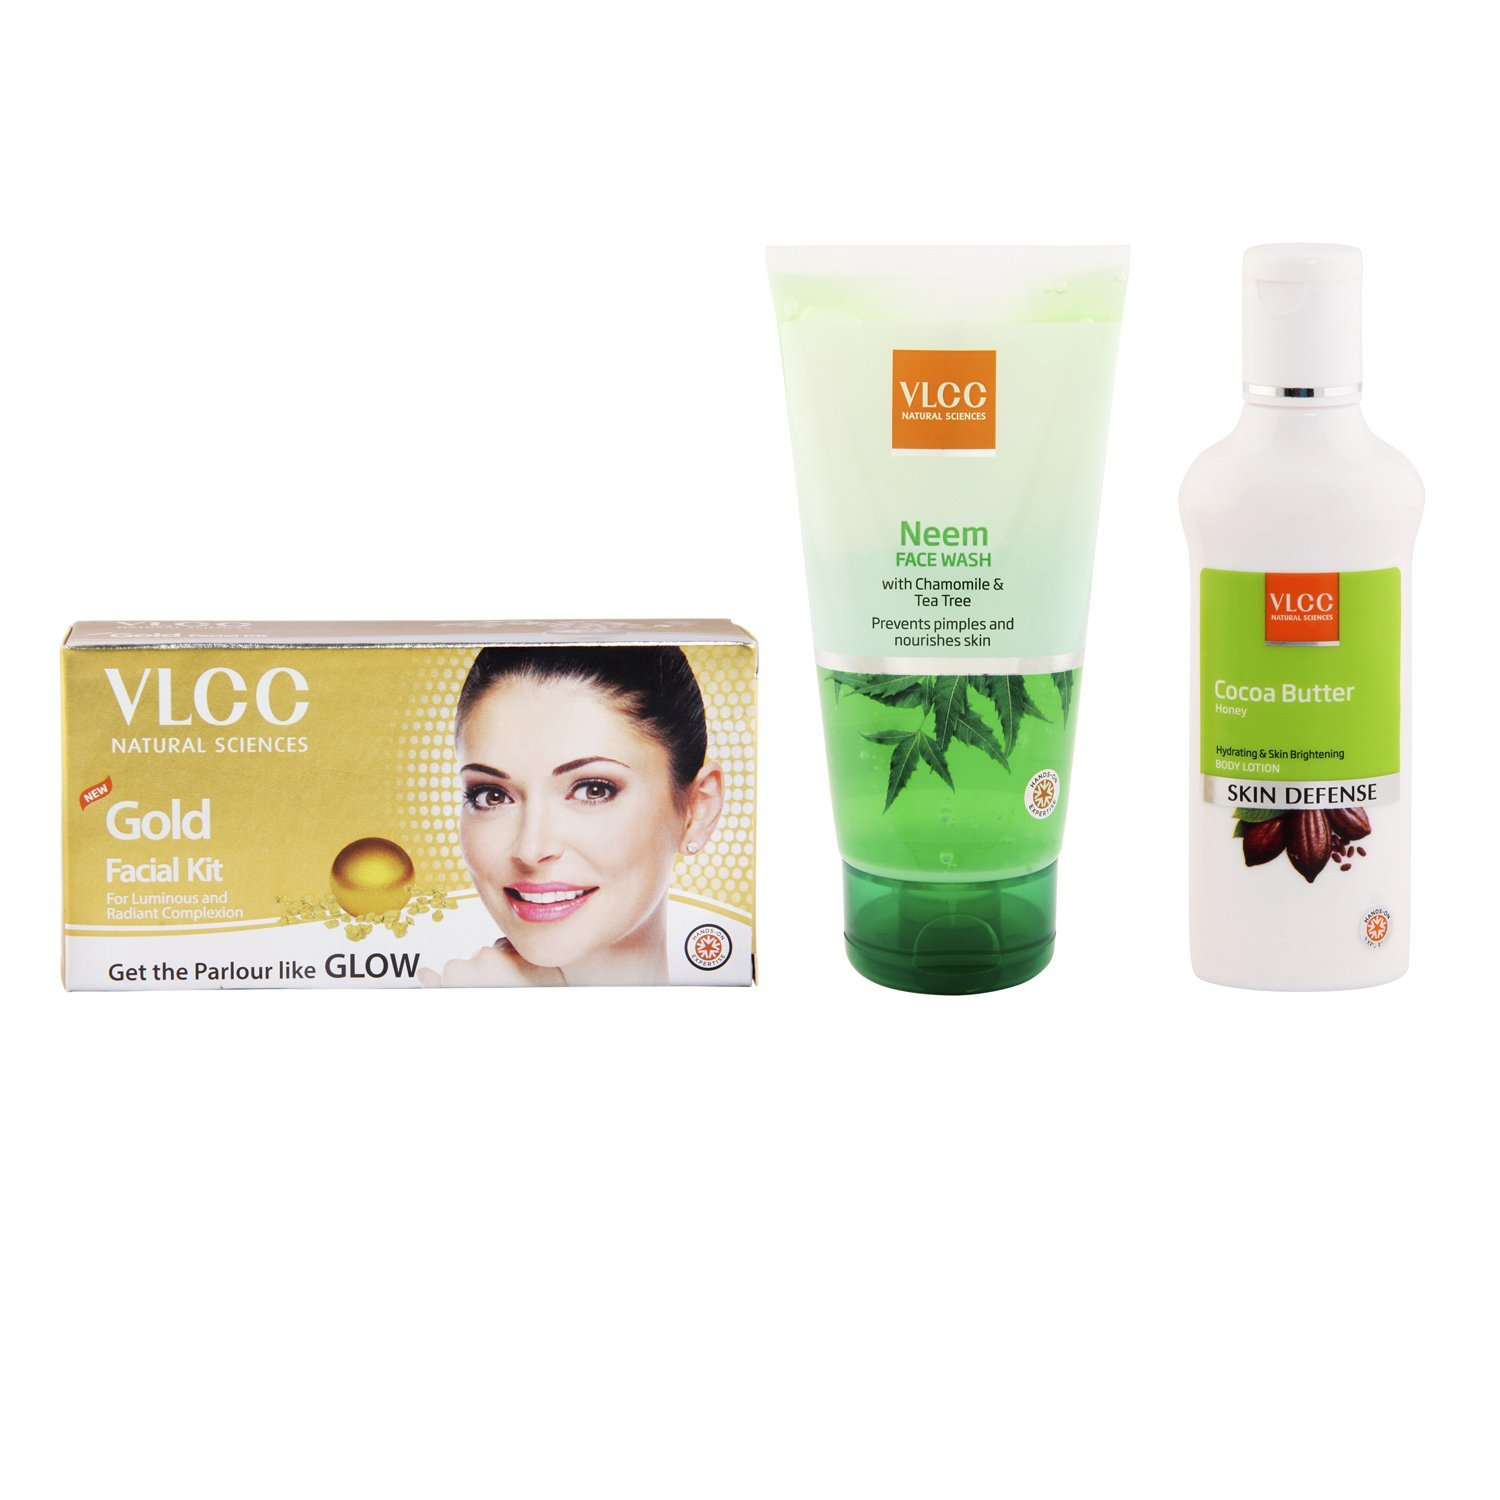 VLCC Gold Single Facial Kit, 60g and Cocoa Butter Body Lotion, 100ml and Neem Facewash, 150ml